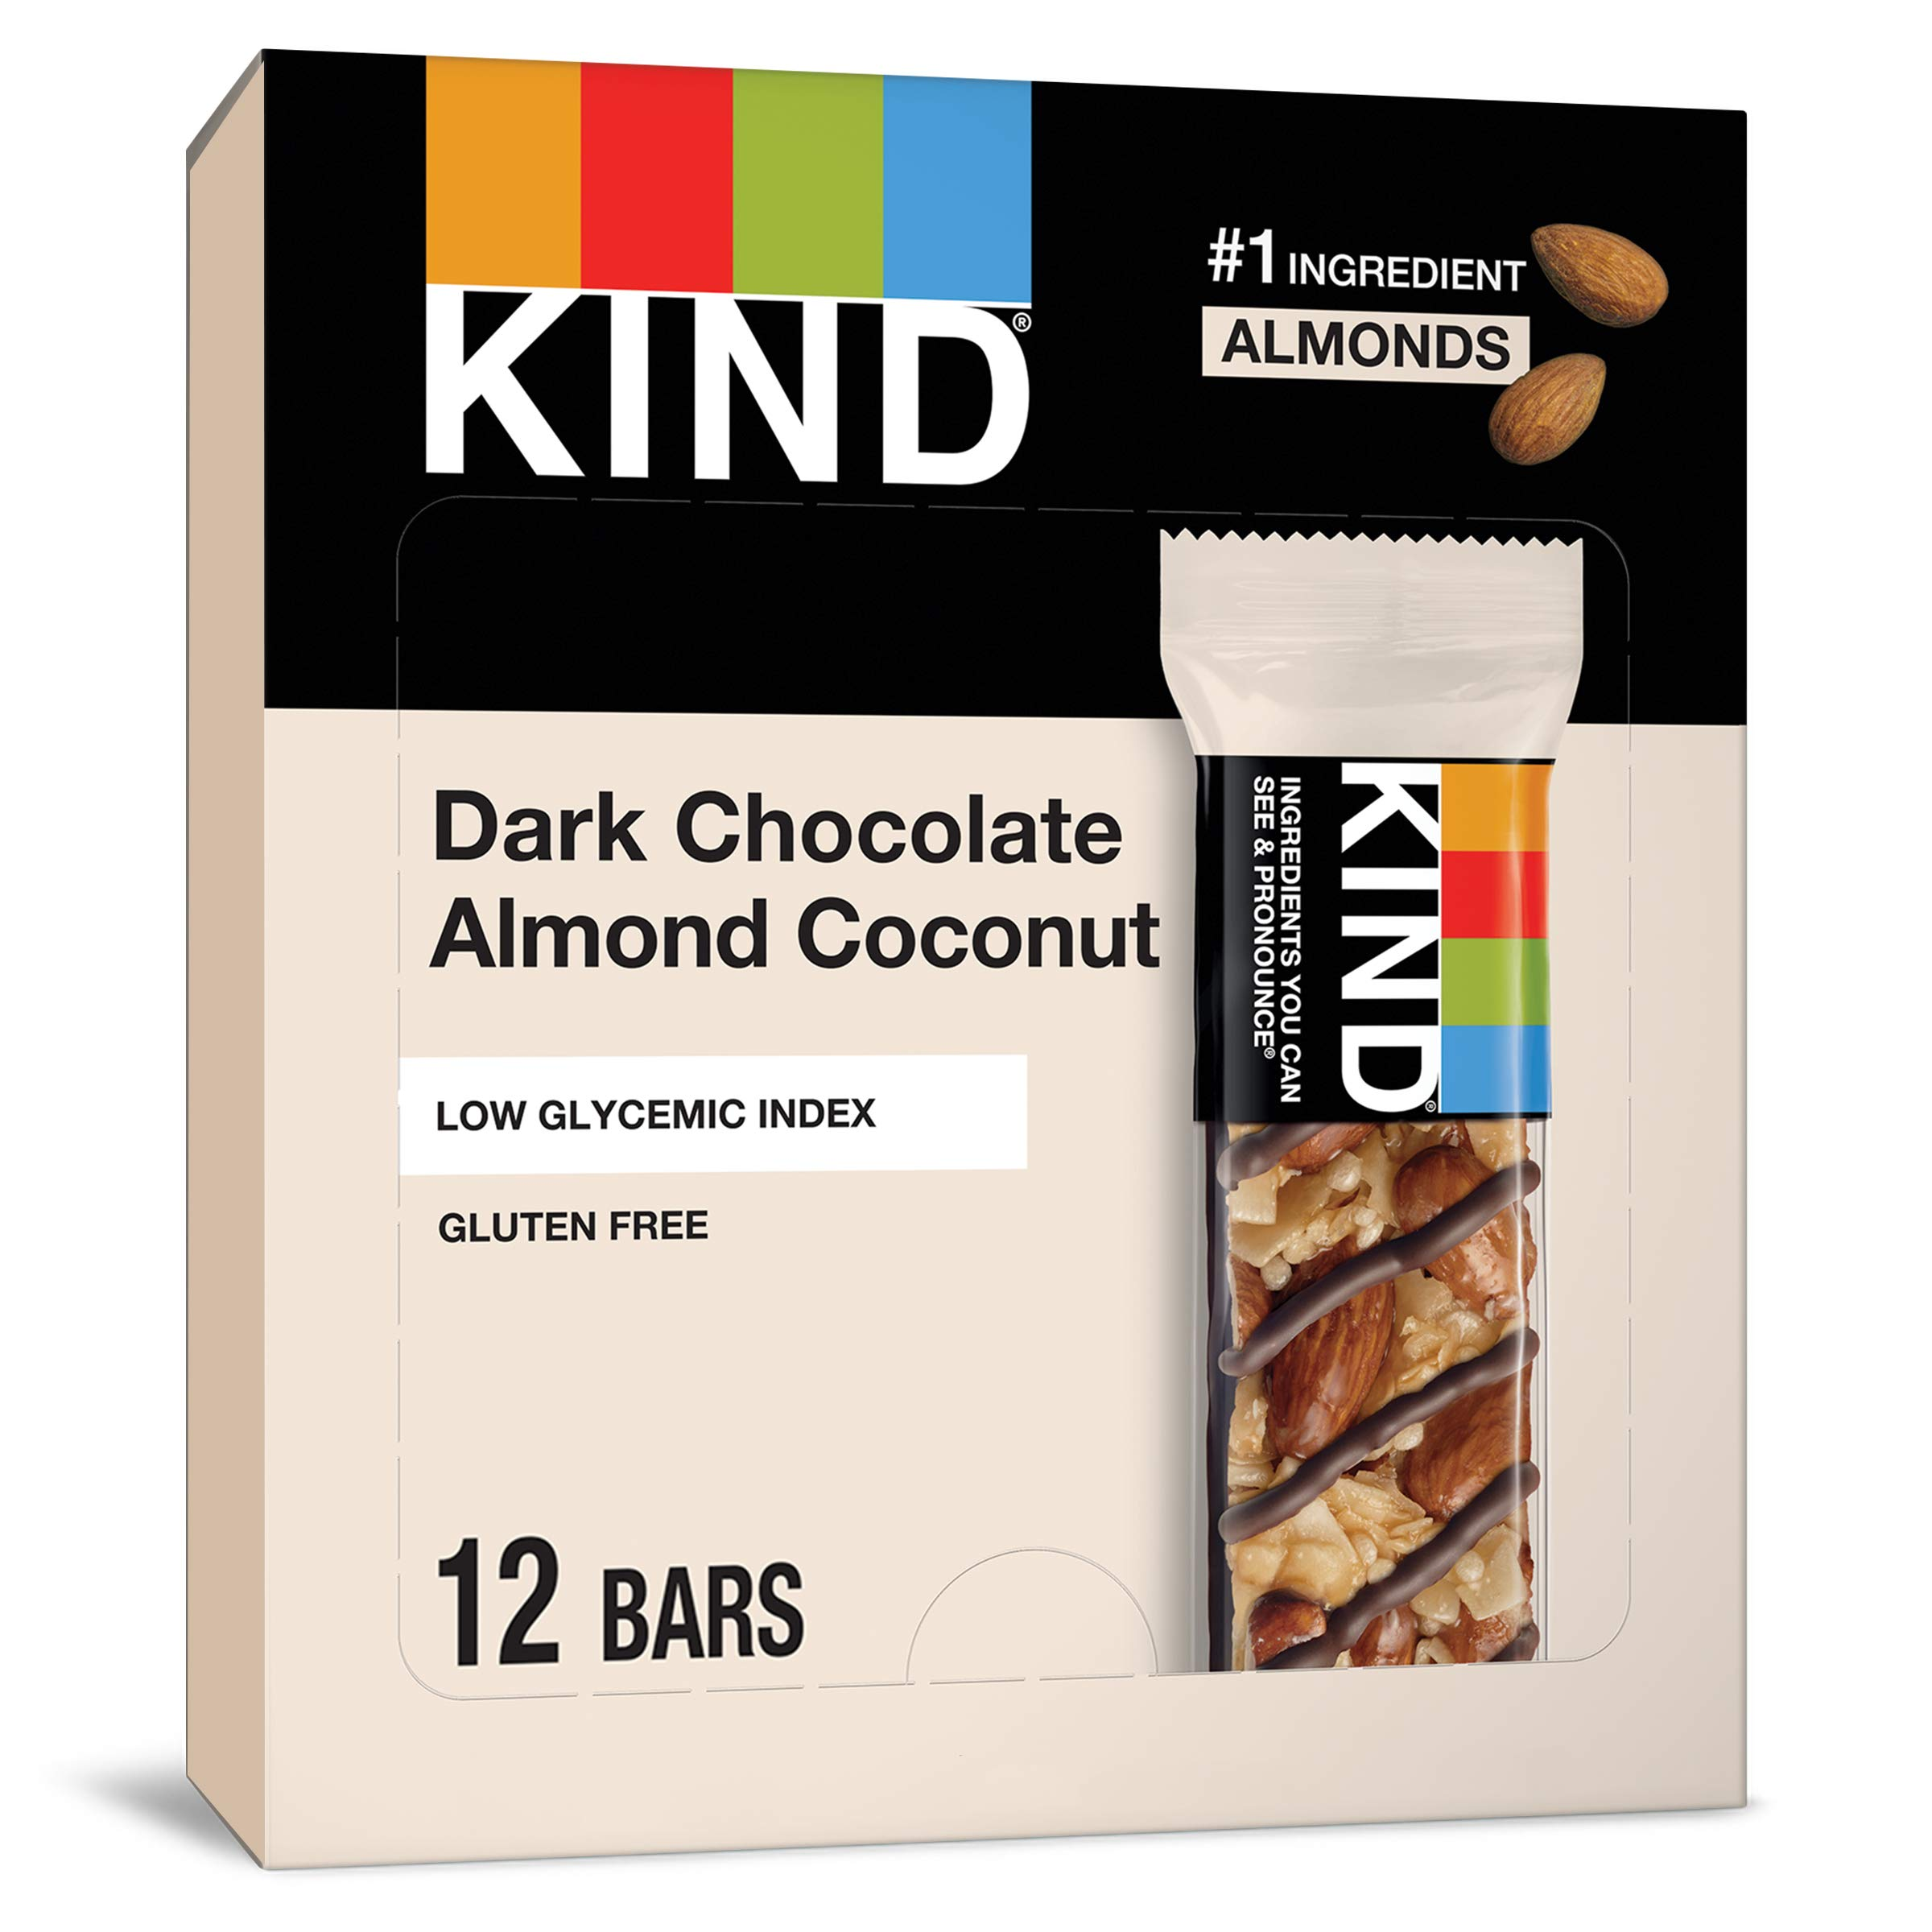 KIND Bars Low Glycemic Index Gluten Free Bars 1.4 OZ, Dark Chocolate Almond & Coconut, (Pack of 12)